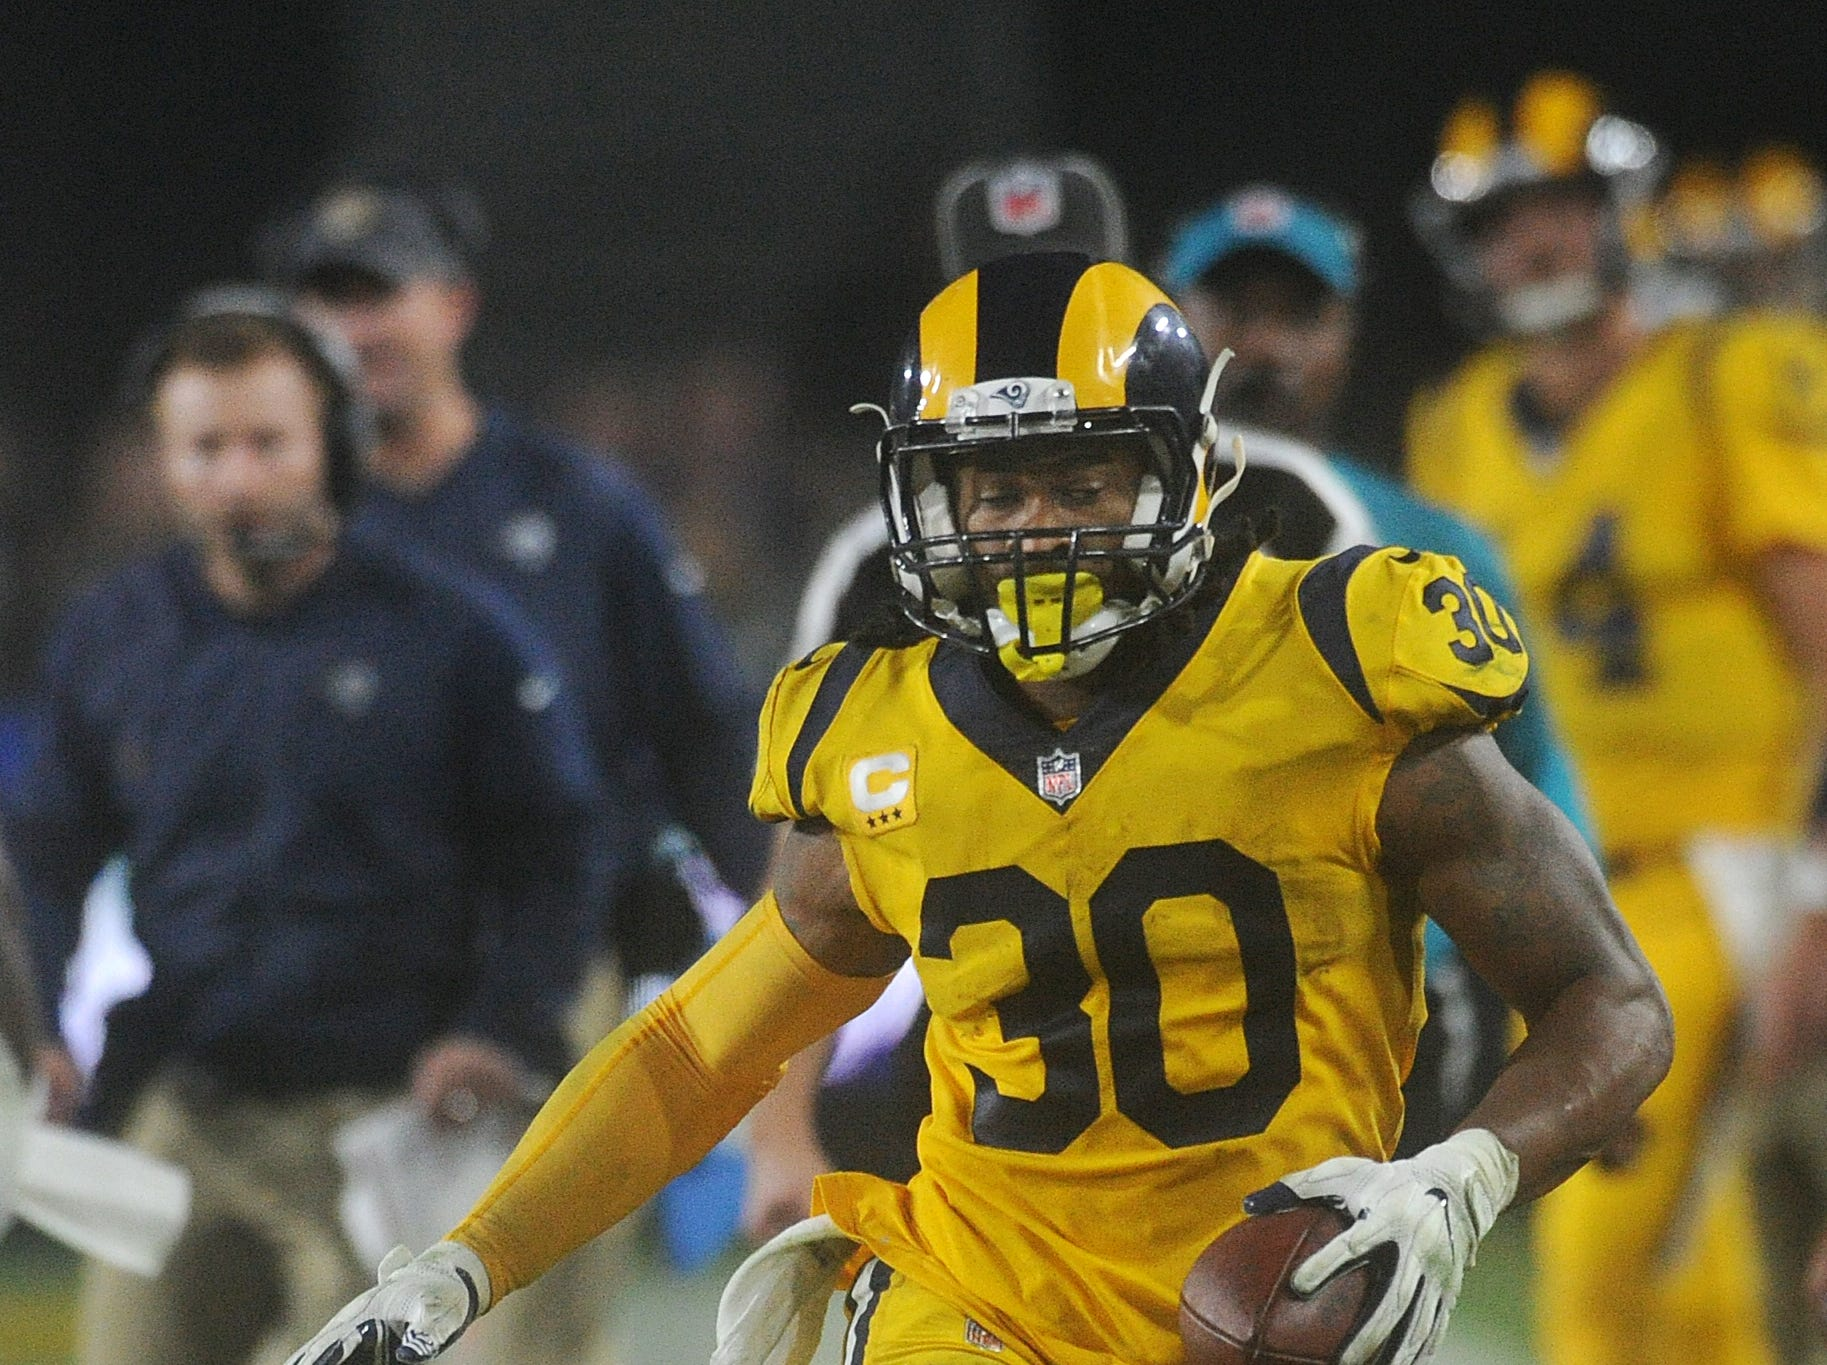 The Rams' Todd Gurley carries the ball on Monday against the Rams at the Coliseum. Gurley carried the ball only 12 times for 55 yards.